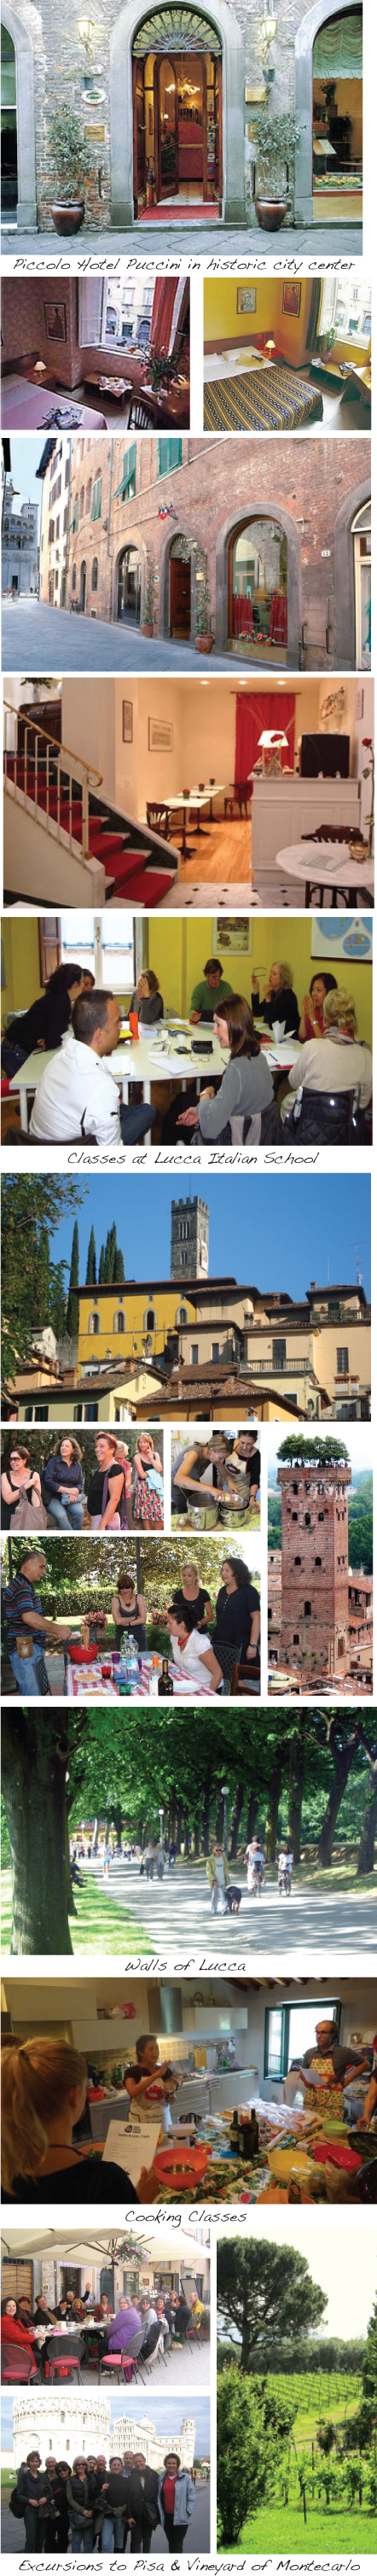 lucca-italian-language-program-melissa-studentessa-matta-lucca-italian-school